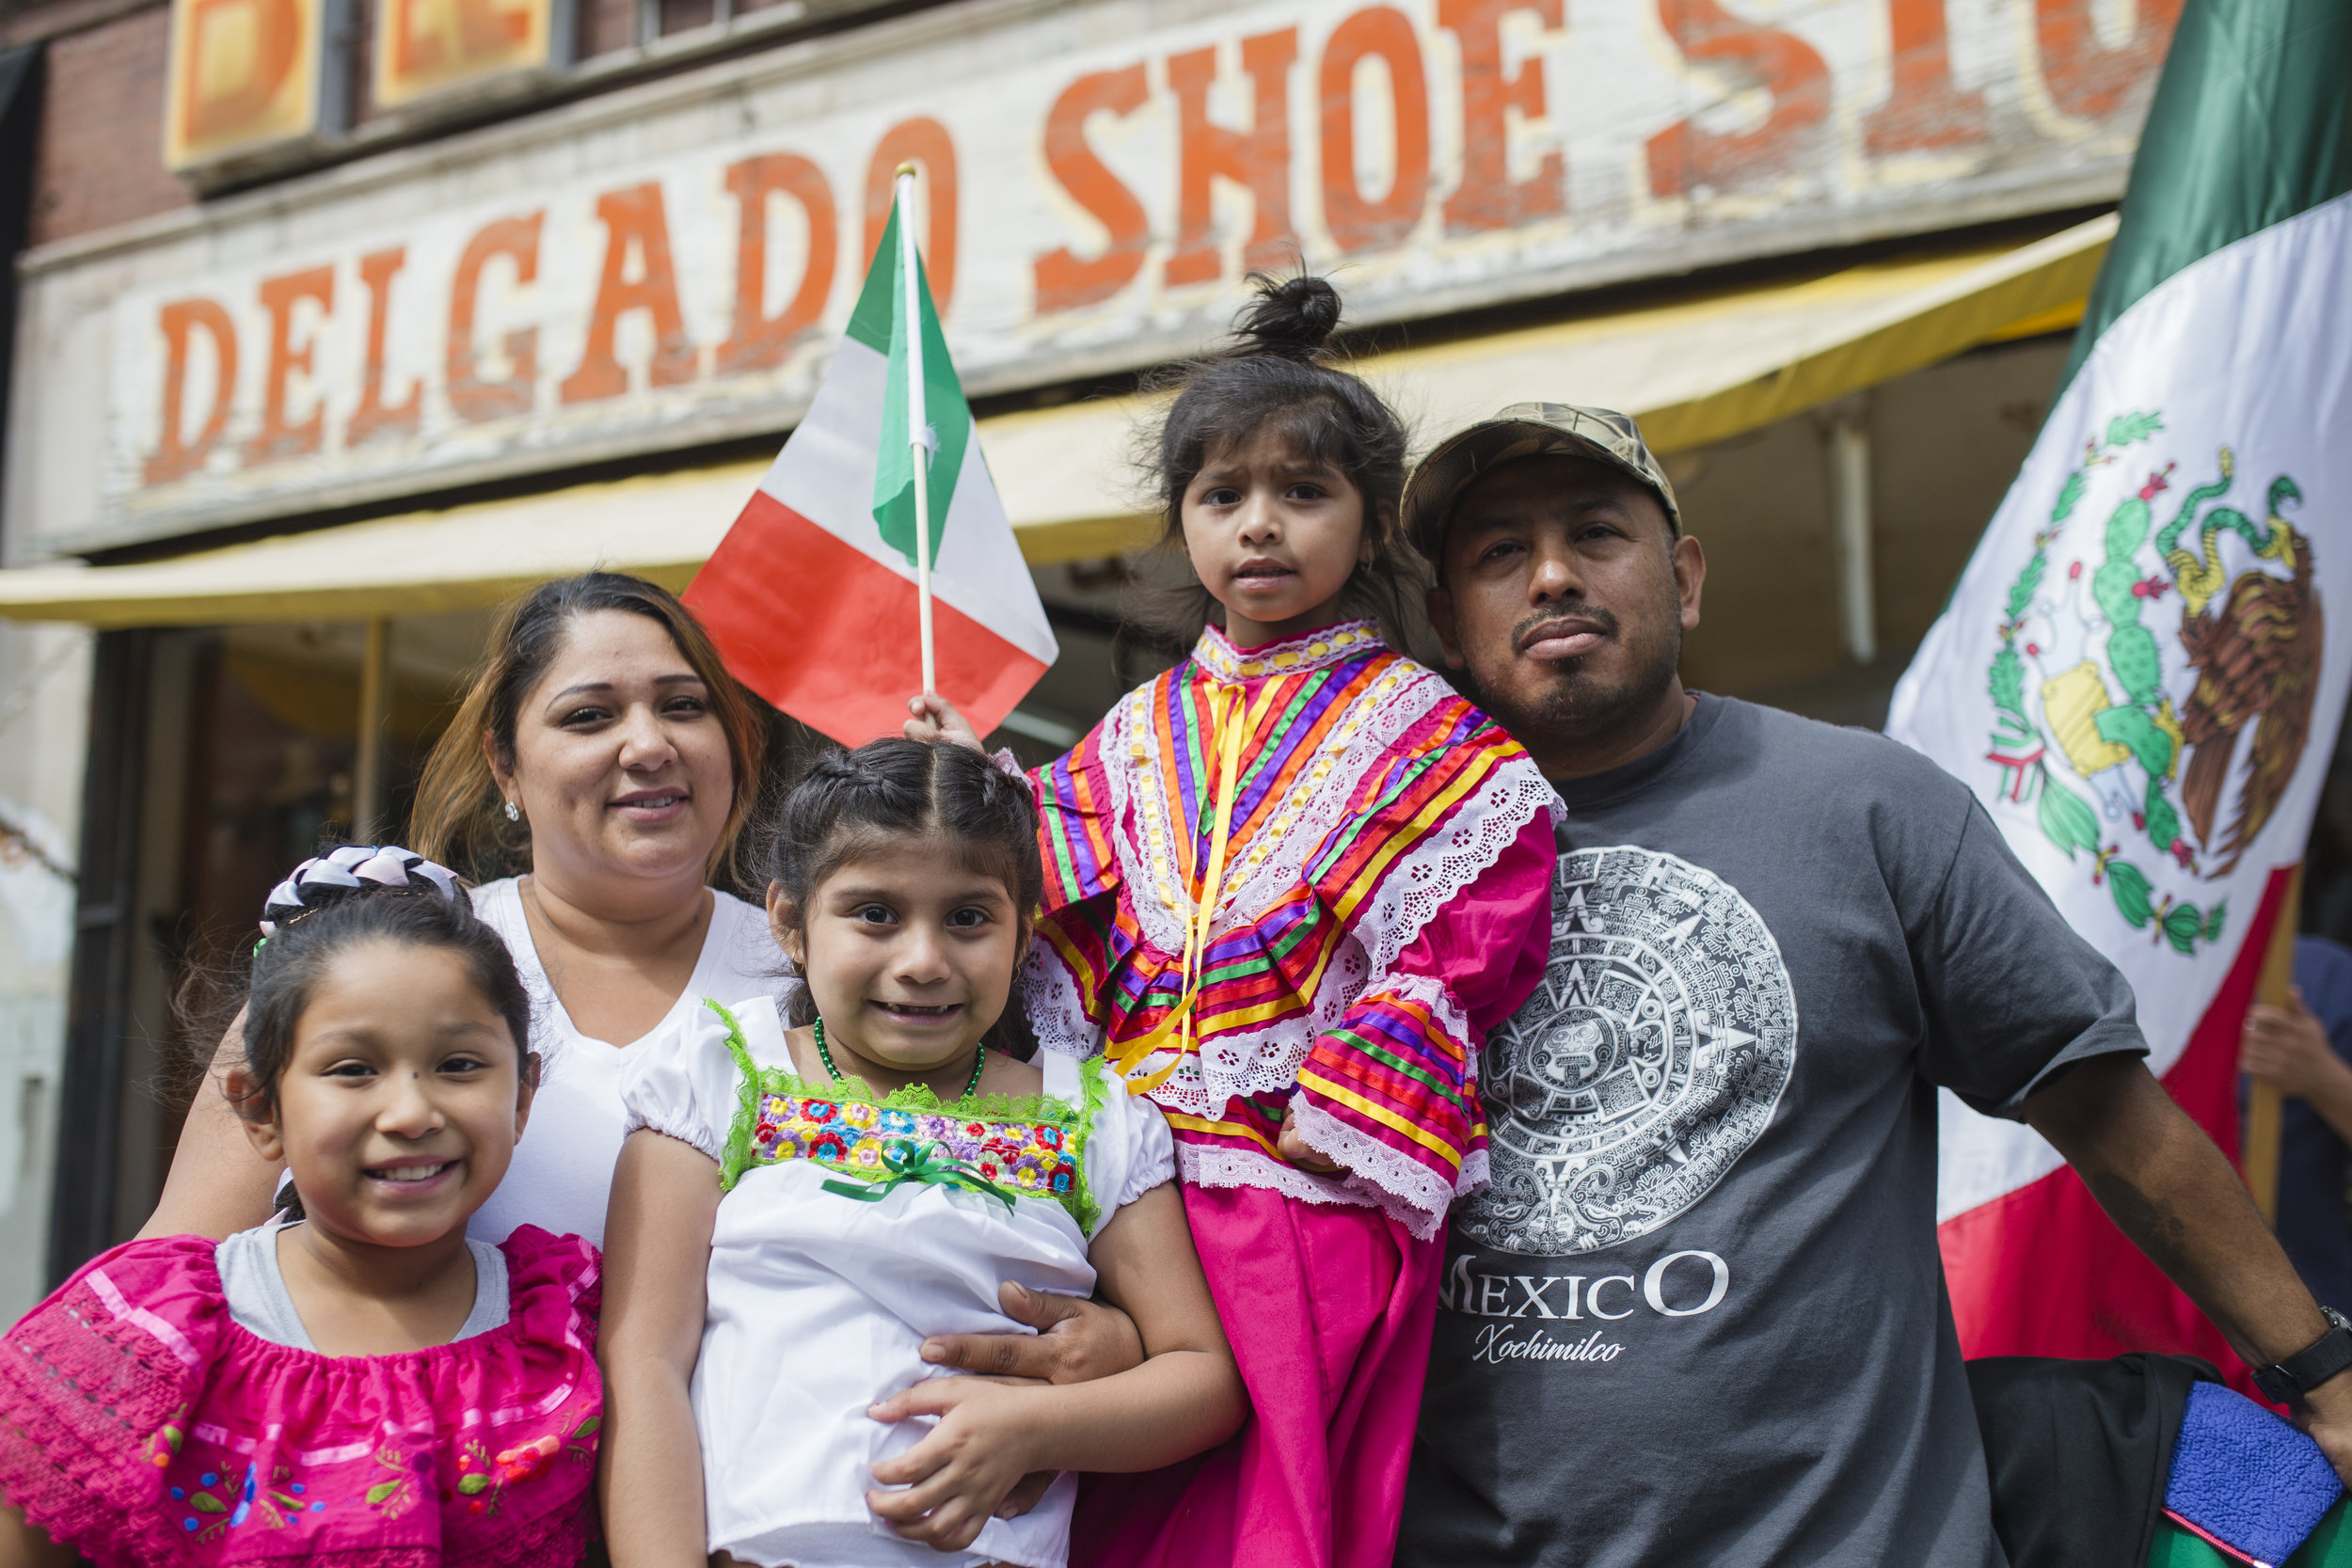 """Lorena Sanchez with Uriel Hernandez, Mia, Milendy and Melanie Hernandez. """"I grew up here in Little Village. I think it's just tradition, you know, from me being a kid to bringing my kids now that, you know, we're not living in the area, but bringing them back to our culture,"""" said Sanchez who believes that families belong together because that's how culture is passed down. """"I think that the family is a culture, you know. There is no family, there is no culture. You have to belong to a family so that you can have a culture."""""""